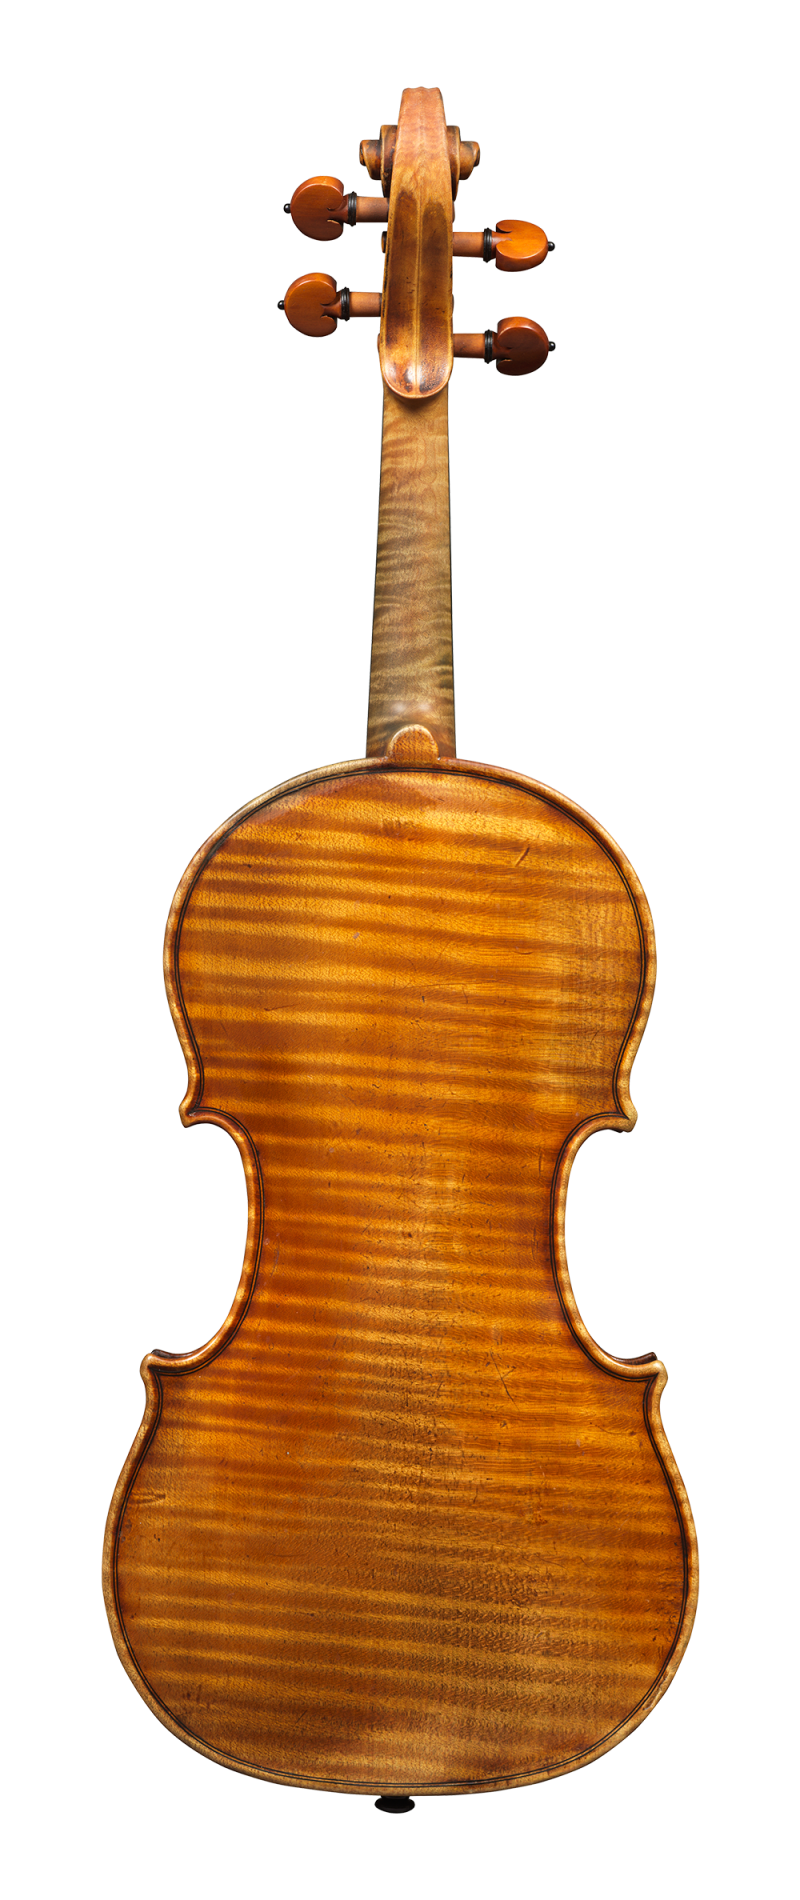 Back of a violin by Alessandro D'Espine, circa 1830. The instrument is made from exceptional wood and covered in luscious orange-red varnish.